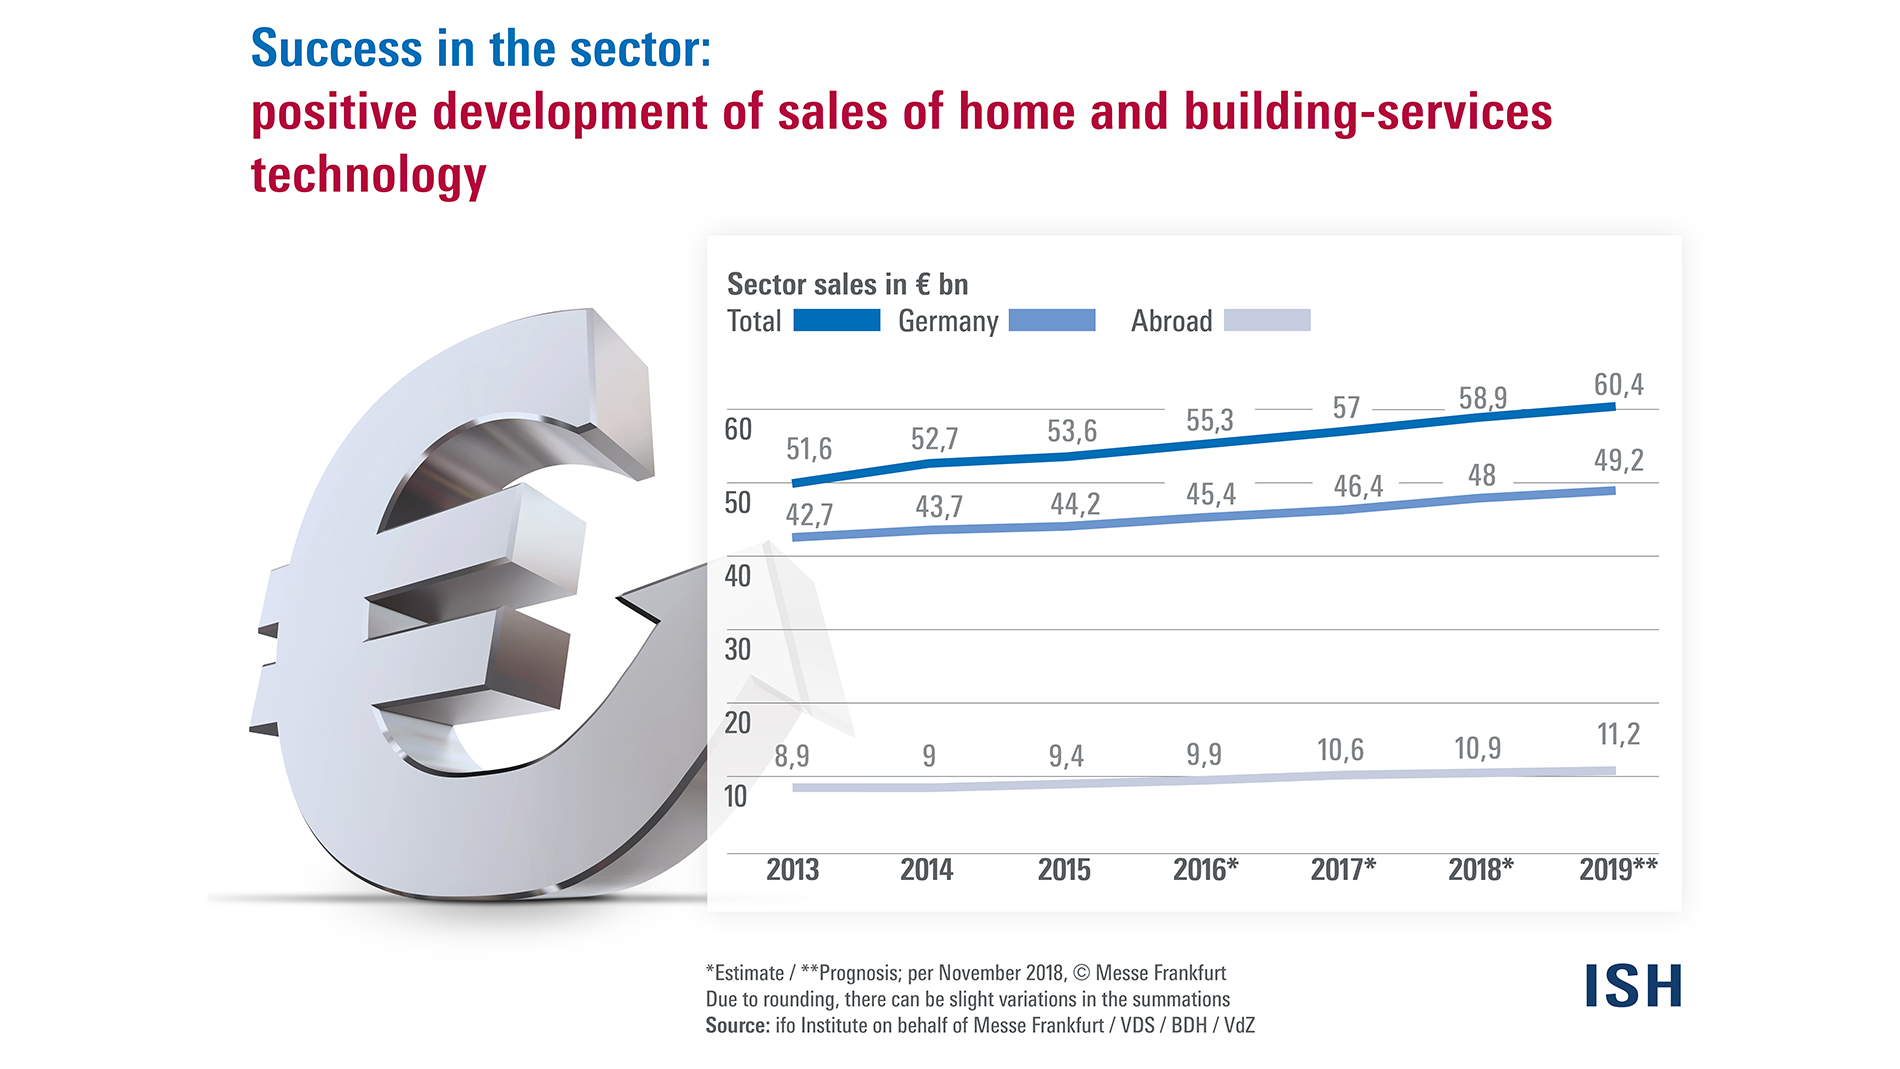 Development of sales of home and building-services technology